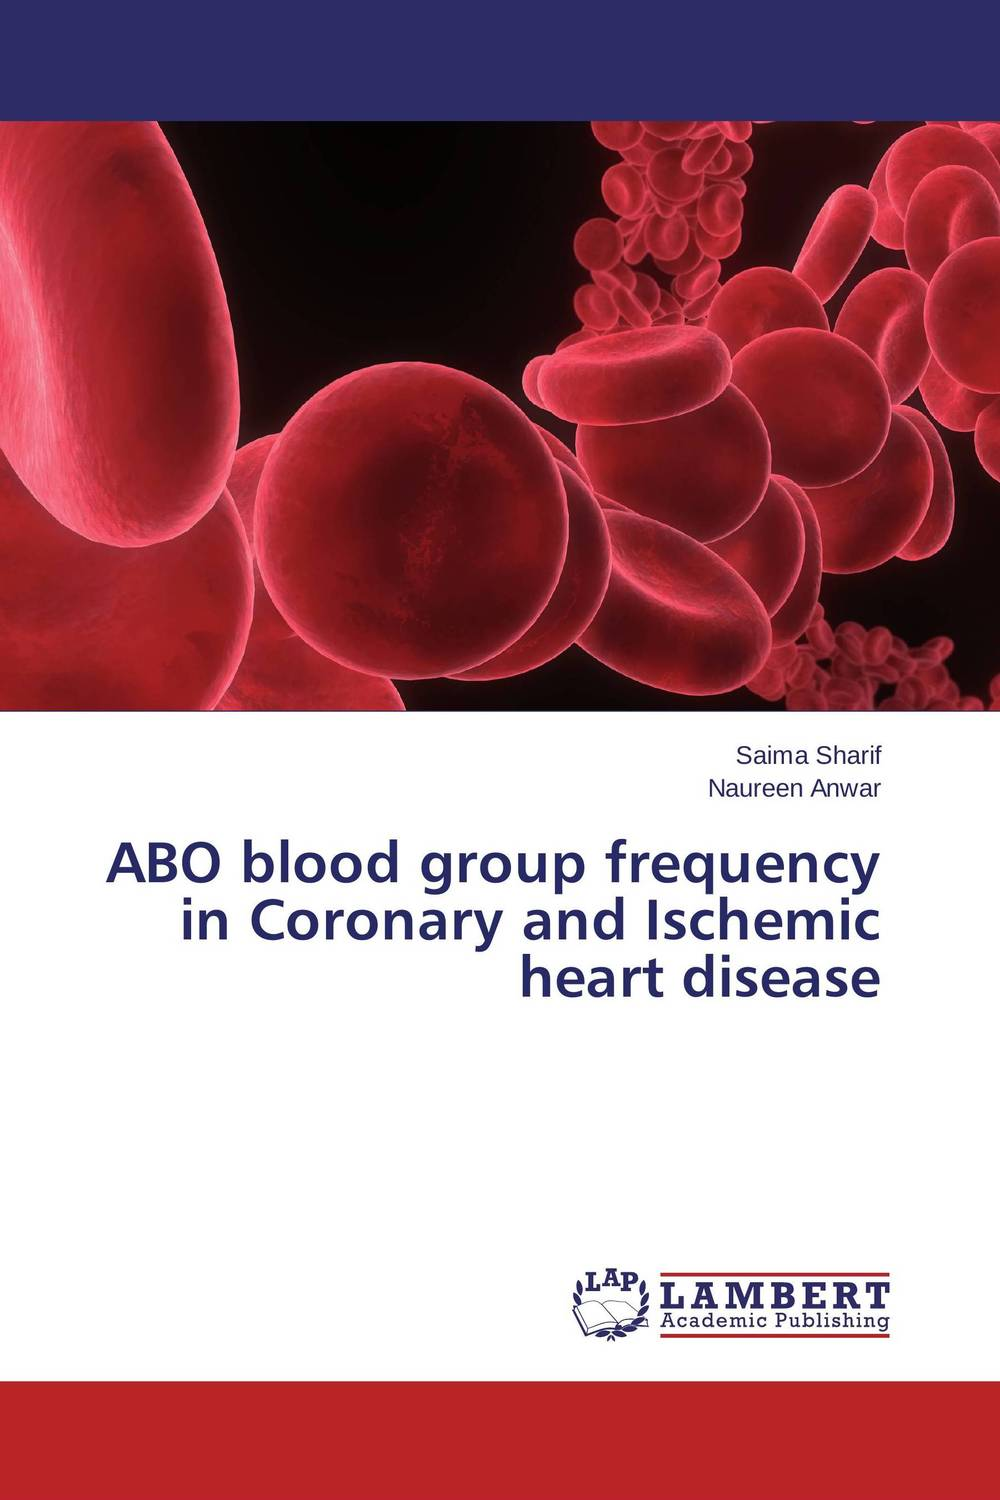 ABO blood group frequency in Coronary and Ischemic heart disease effect of ischemic heart disease on the audiovestibular functions